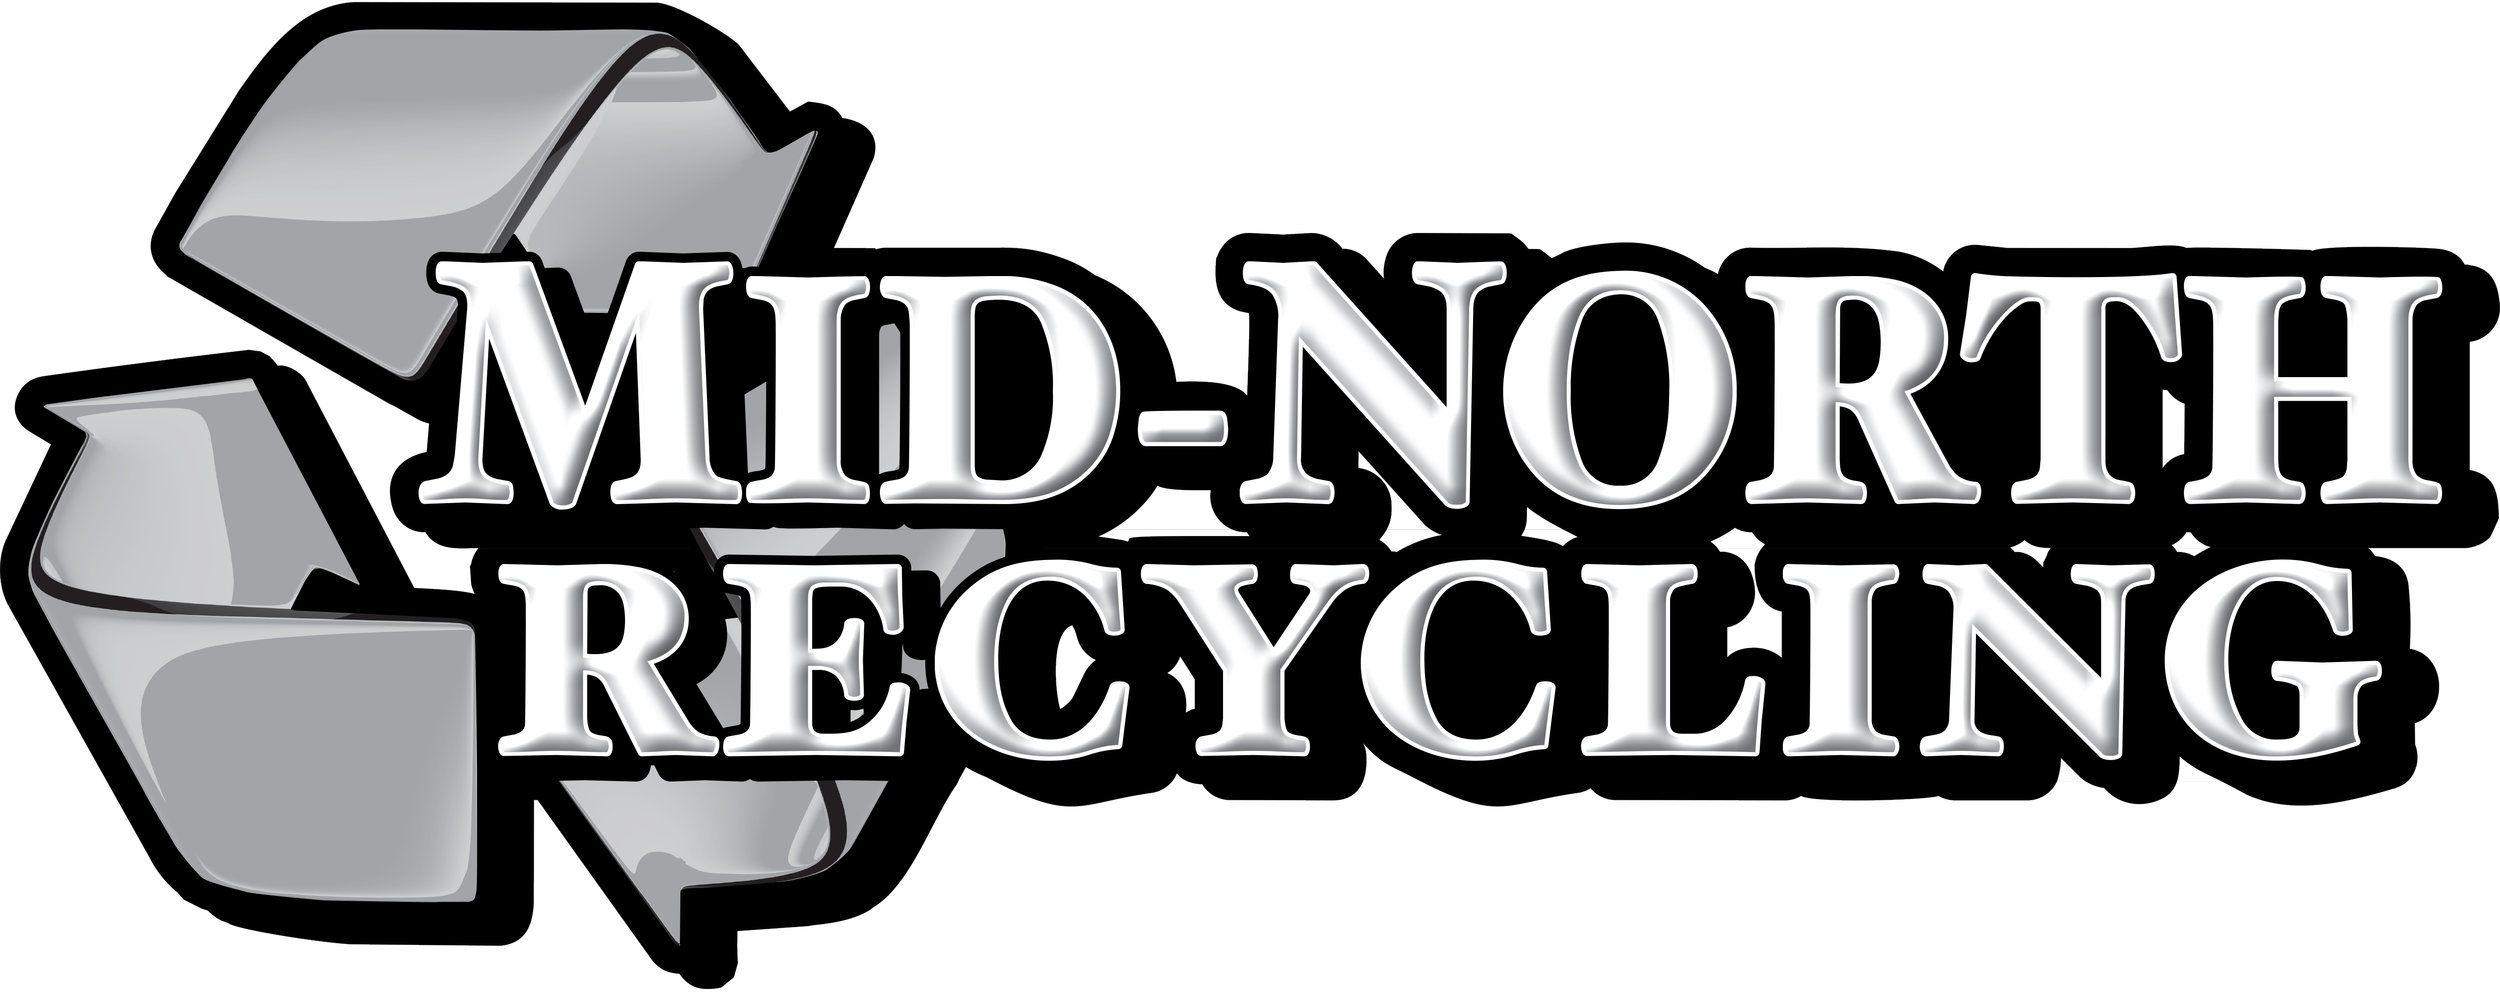 Mid-North Recycling - LOGO!.jpg